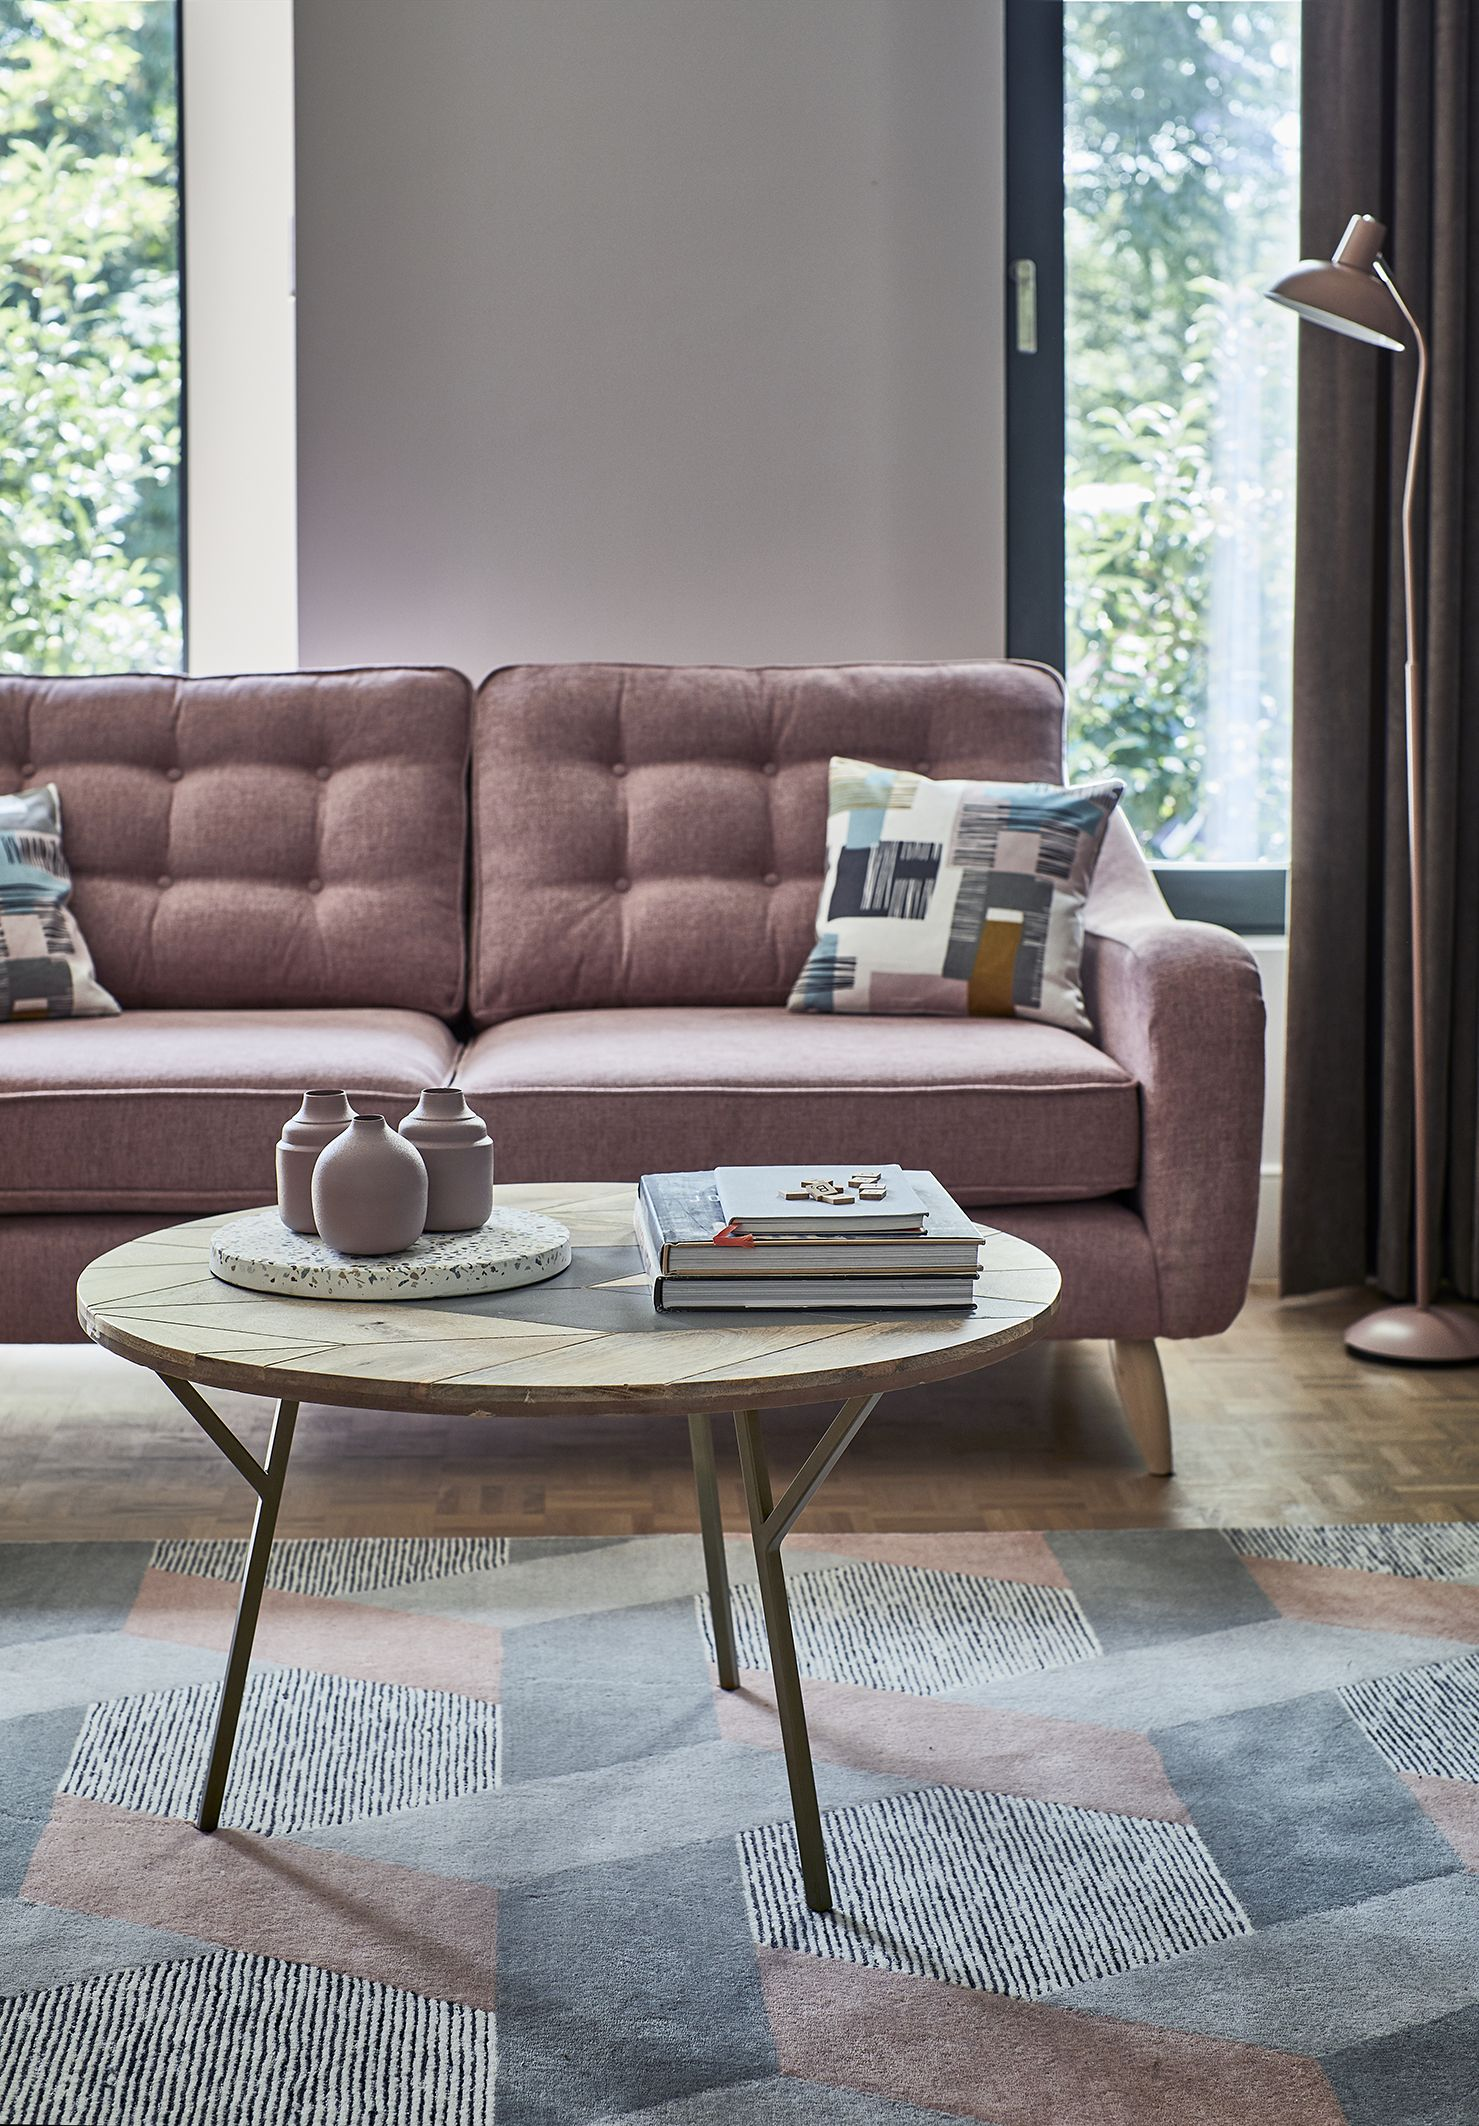 The modern jive trend will add a retro touch to your interior with bold patterns